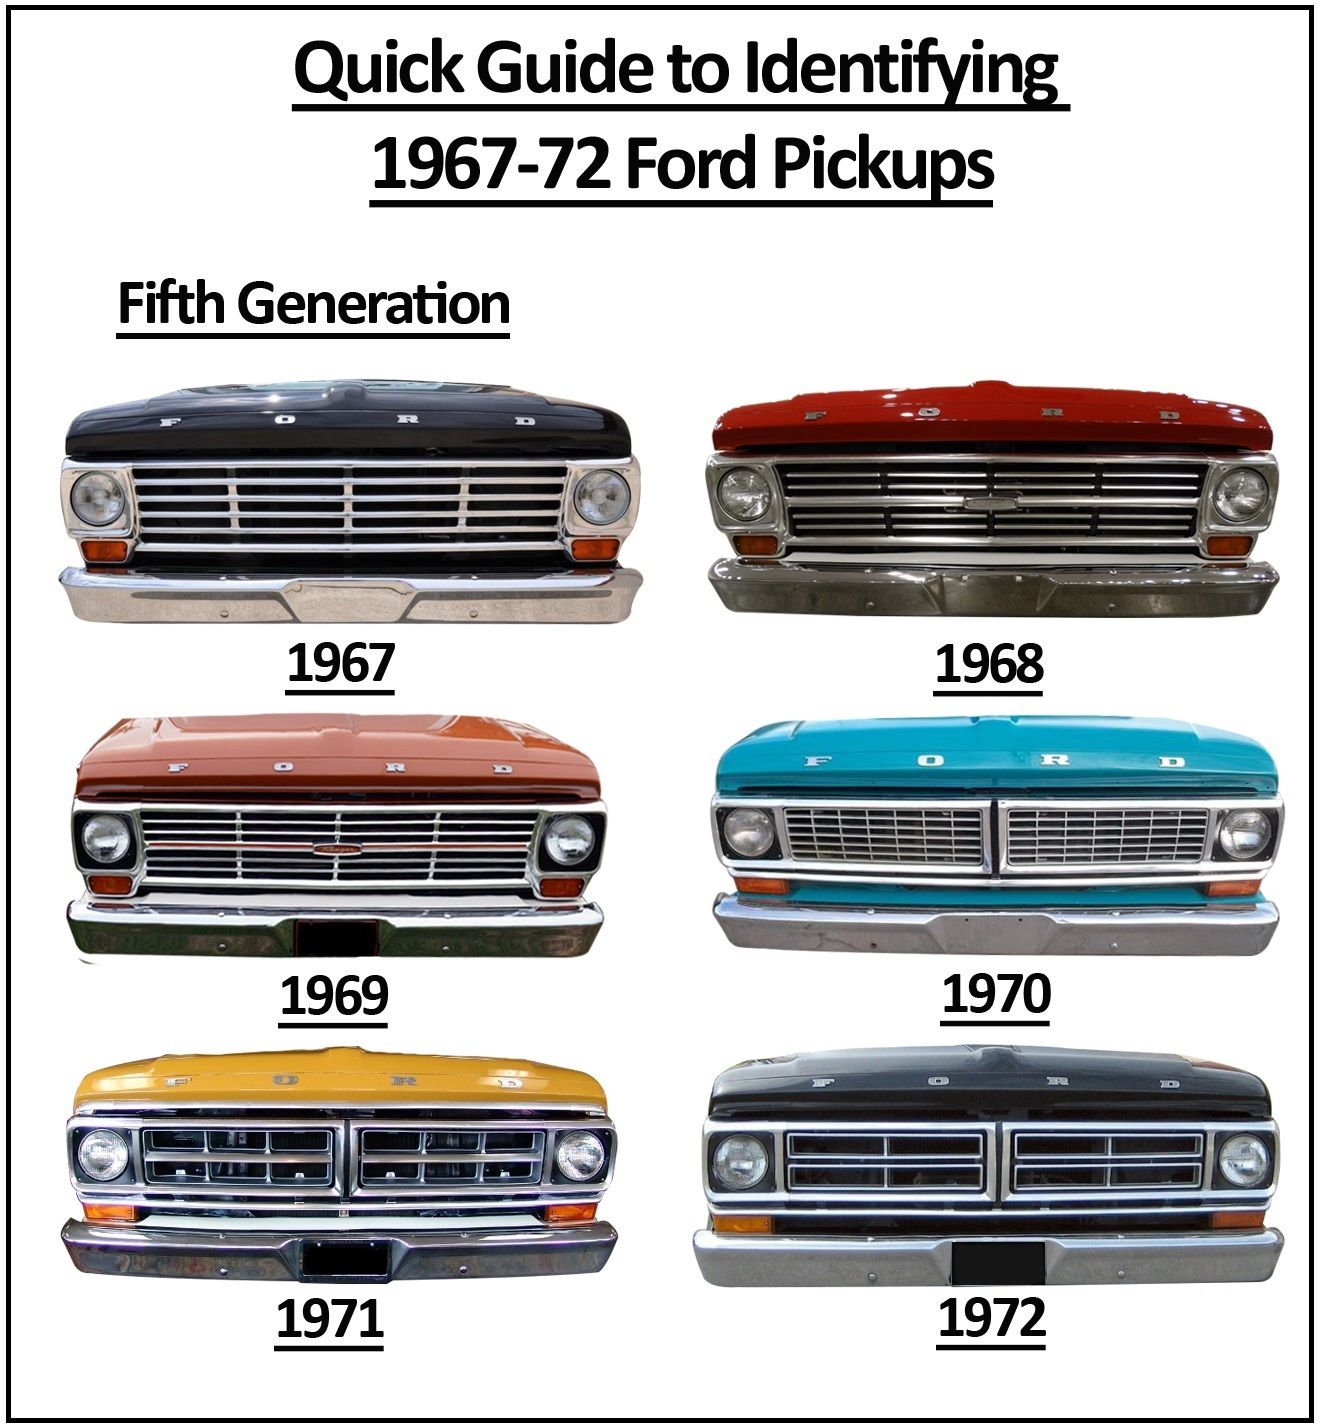 Ride Guides A Quick Guide To Identifying 1967 72 Ford Trucks